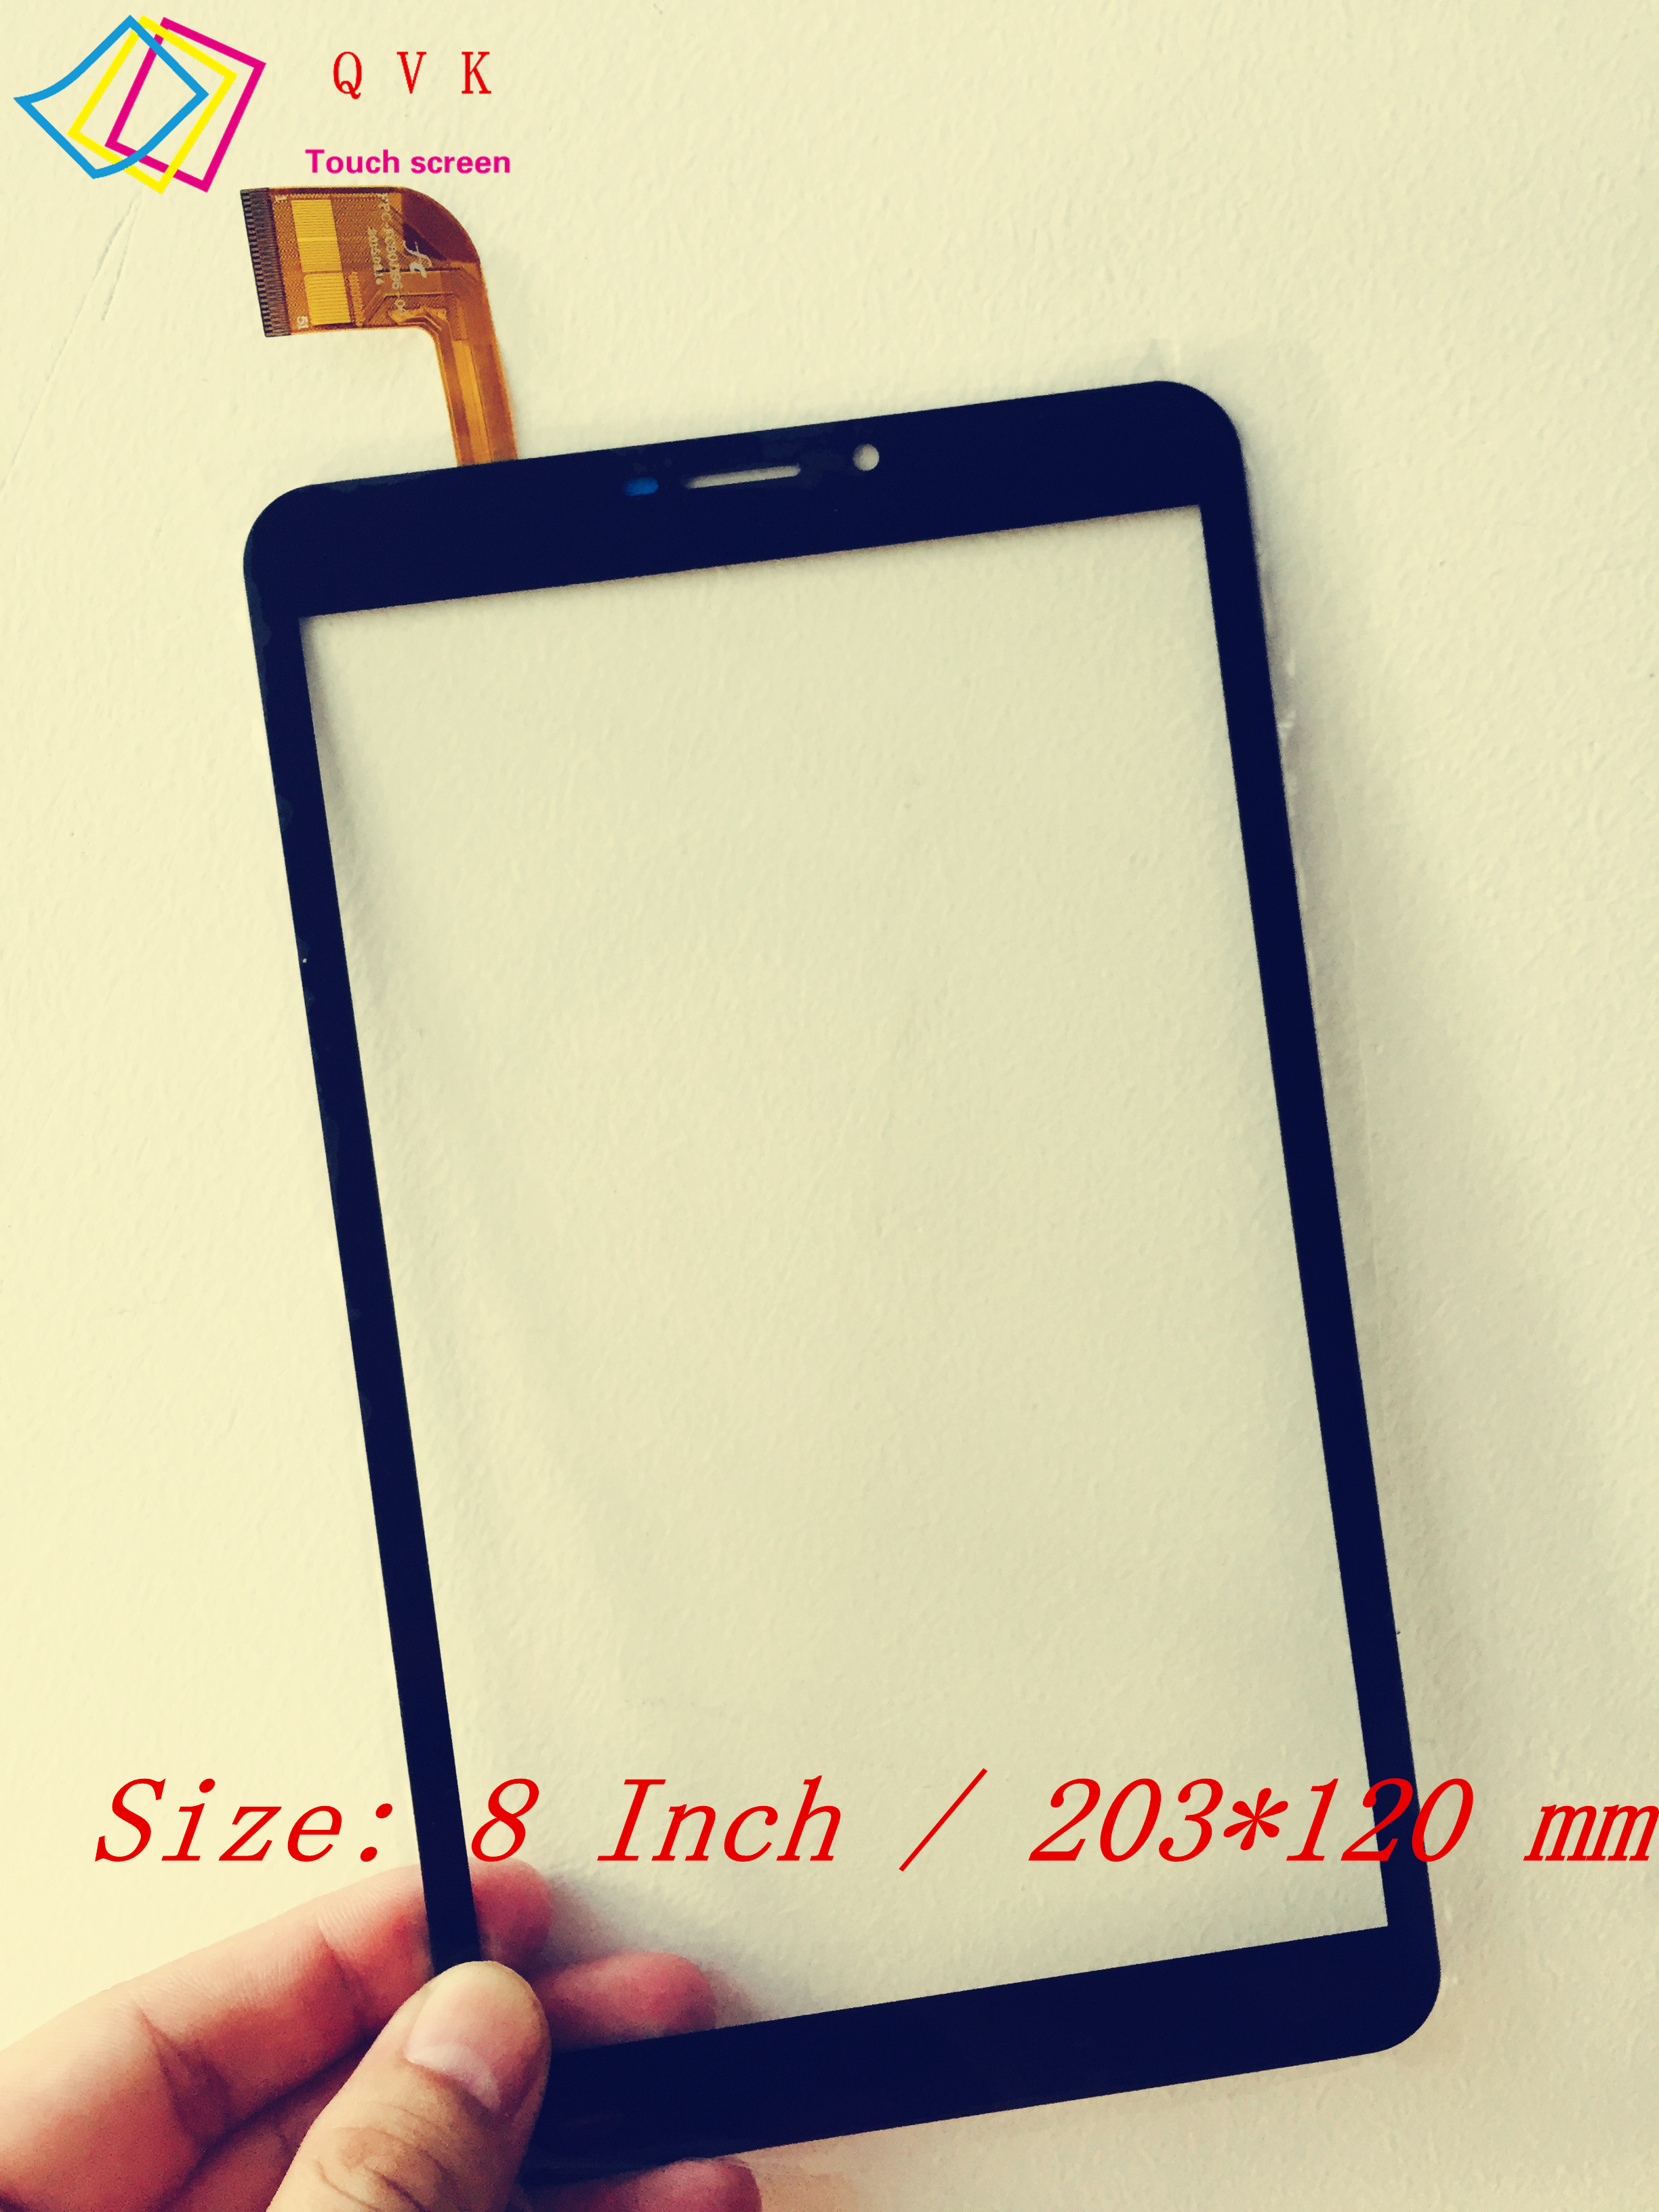 Black 8 Inch for Vonino Pluri Q8 tablet pc capacitive touch screen glass digitizer panel Free shipping for hsctp 852b 8 v0 tablet capacitive touch screen 8 inch pc touch panel digitizer glass mid sensor free shipping